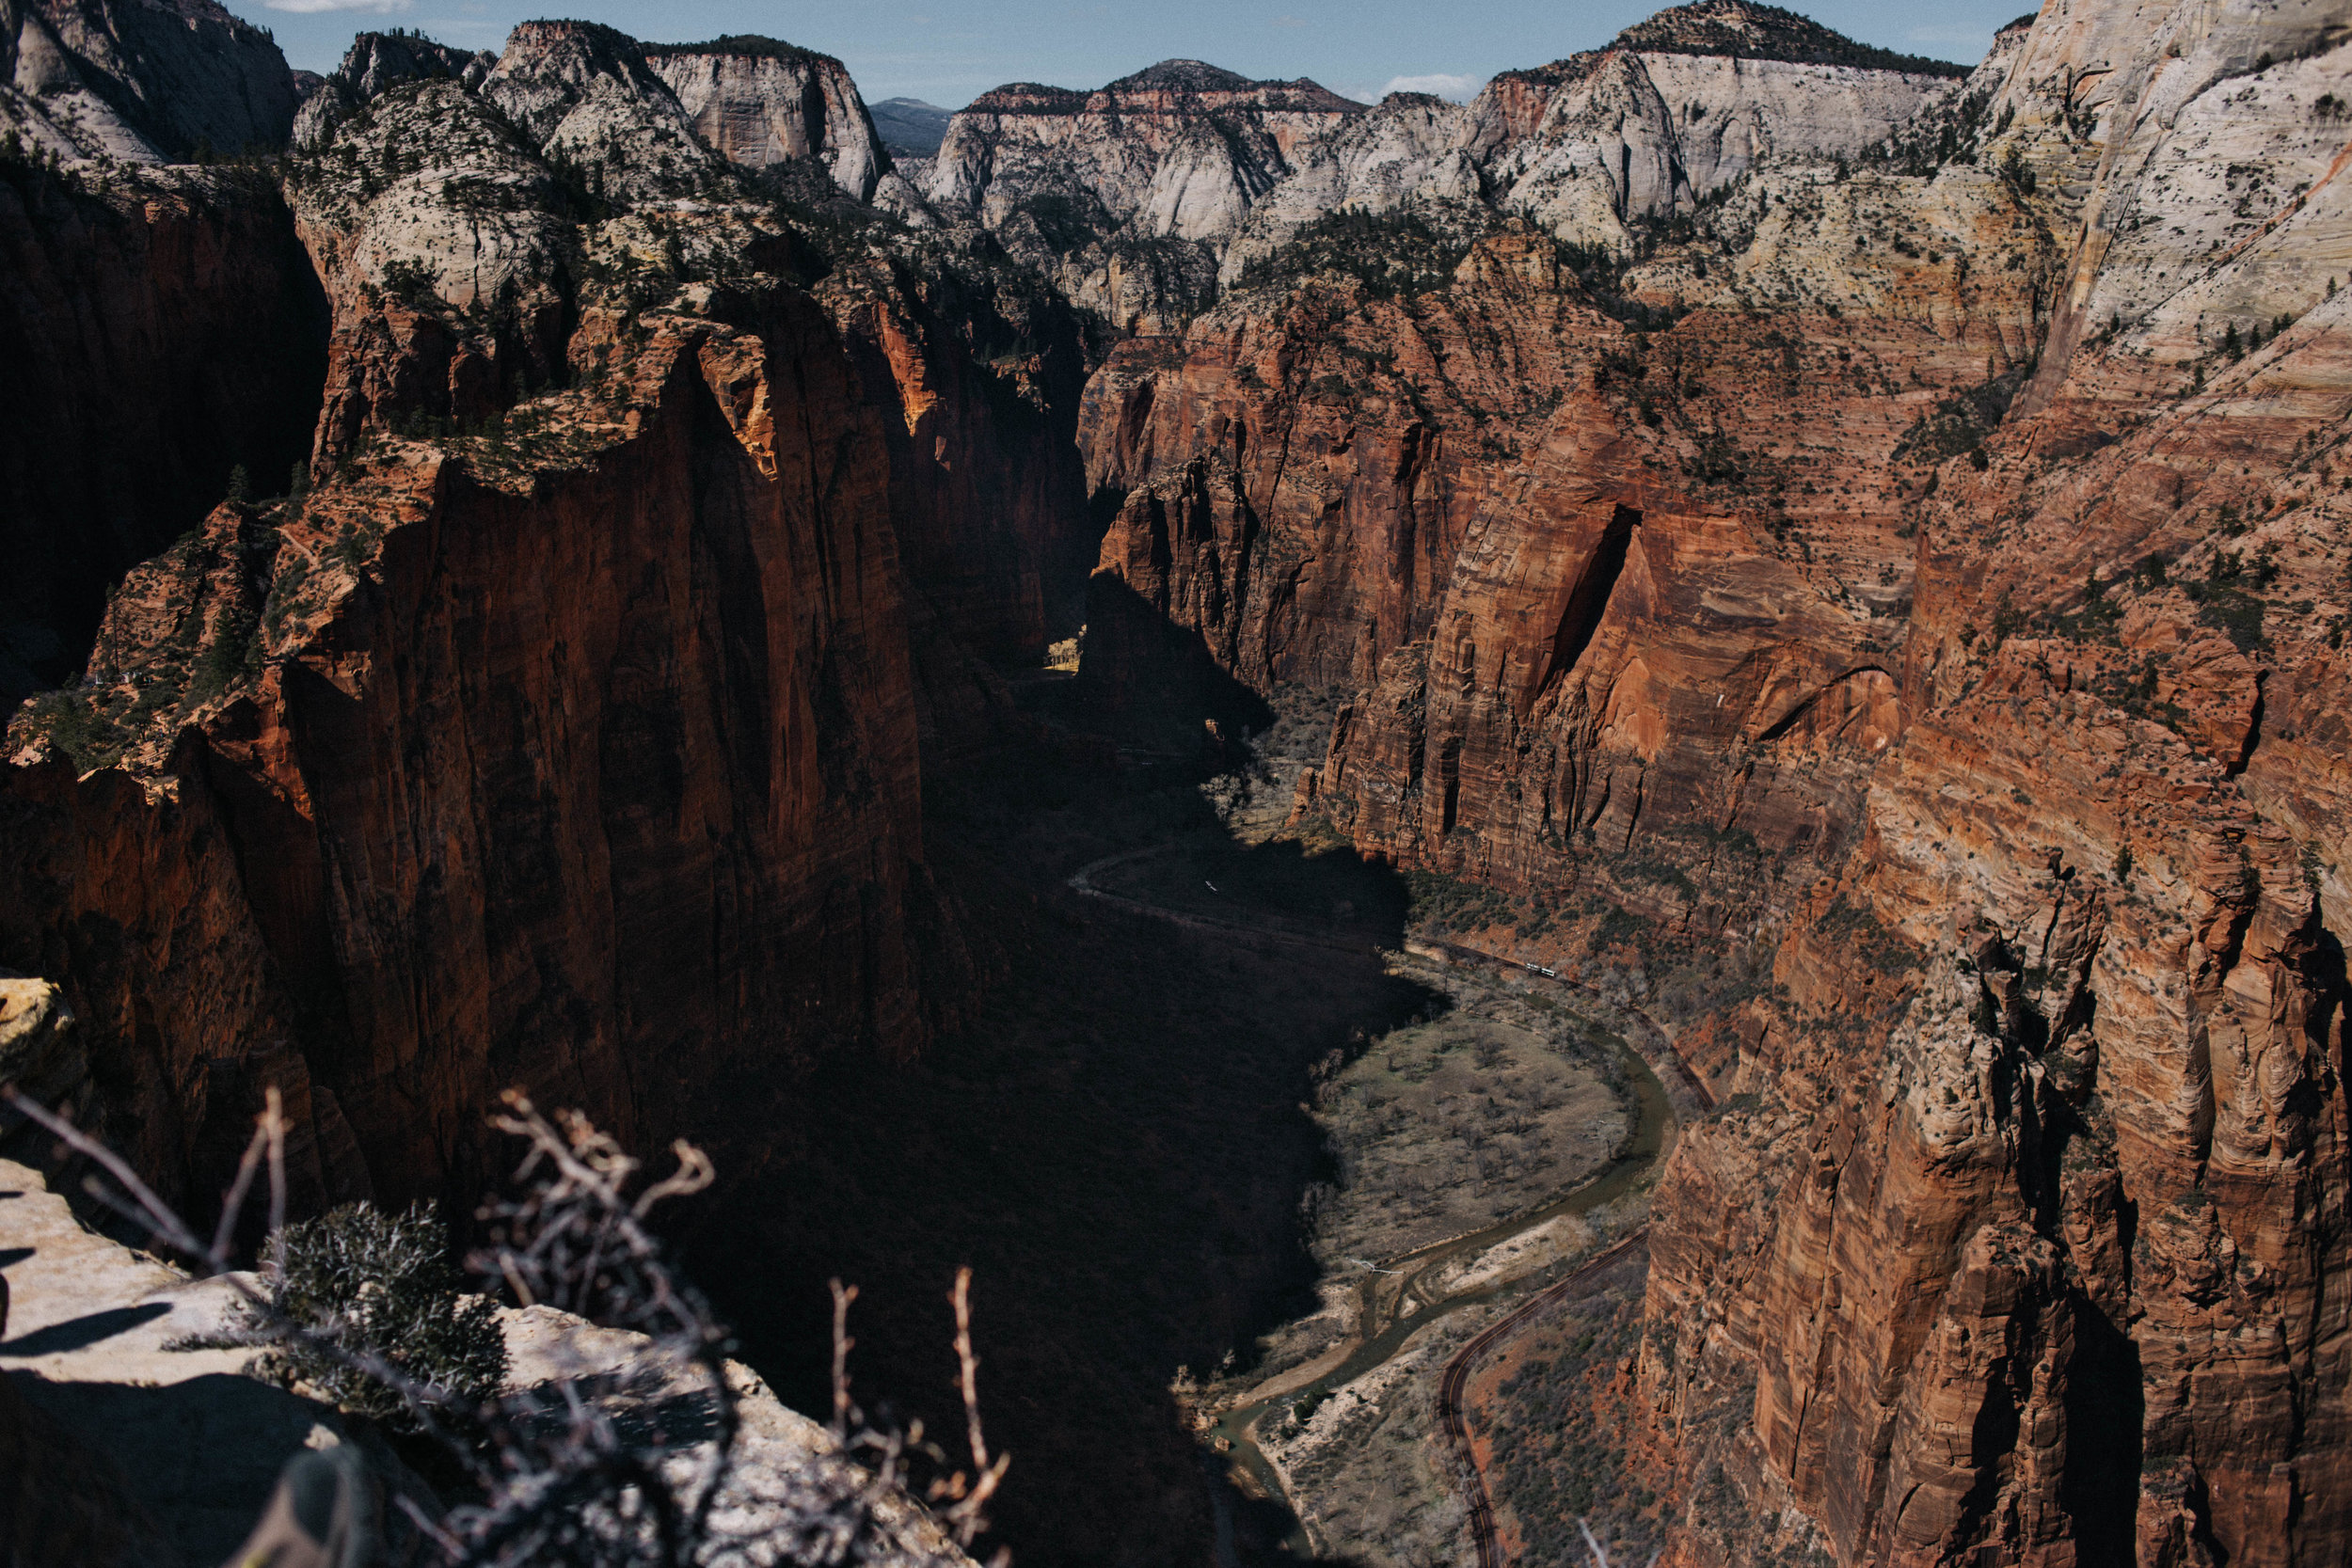 View from the top of the Angel's Landing hike